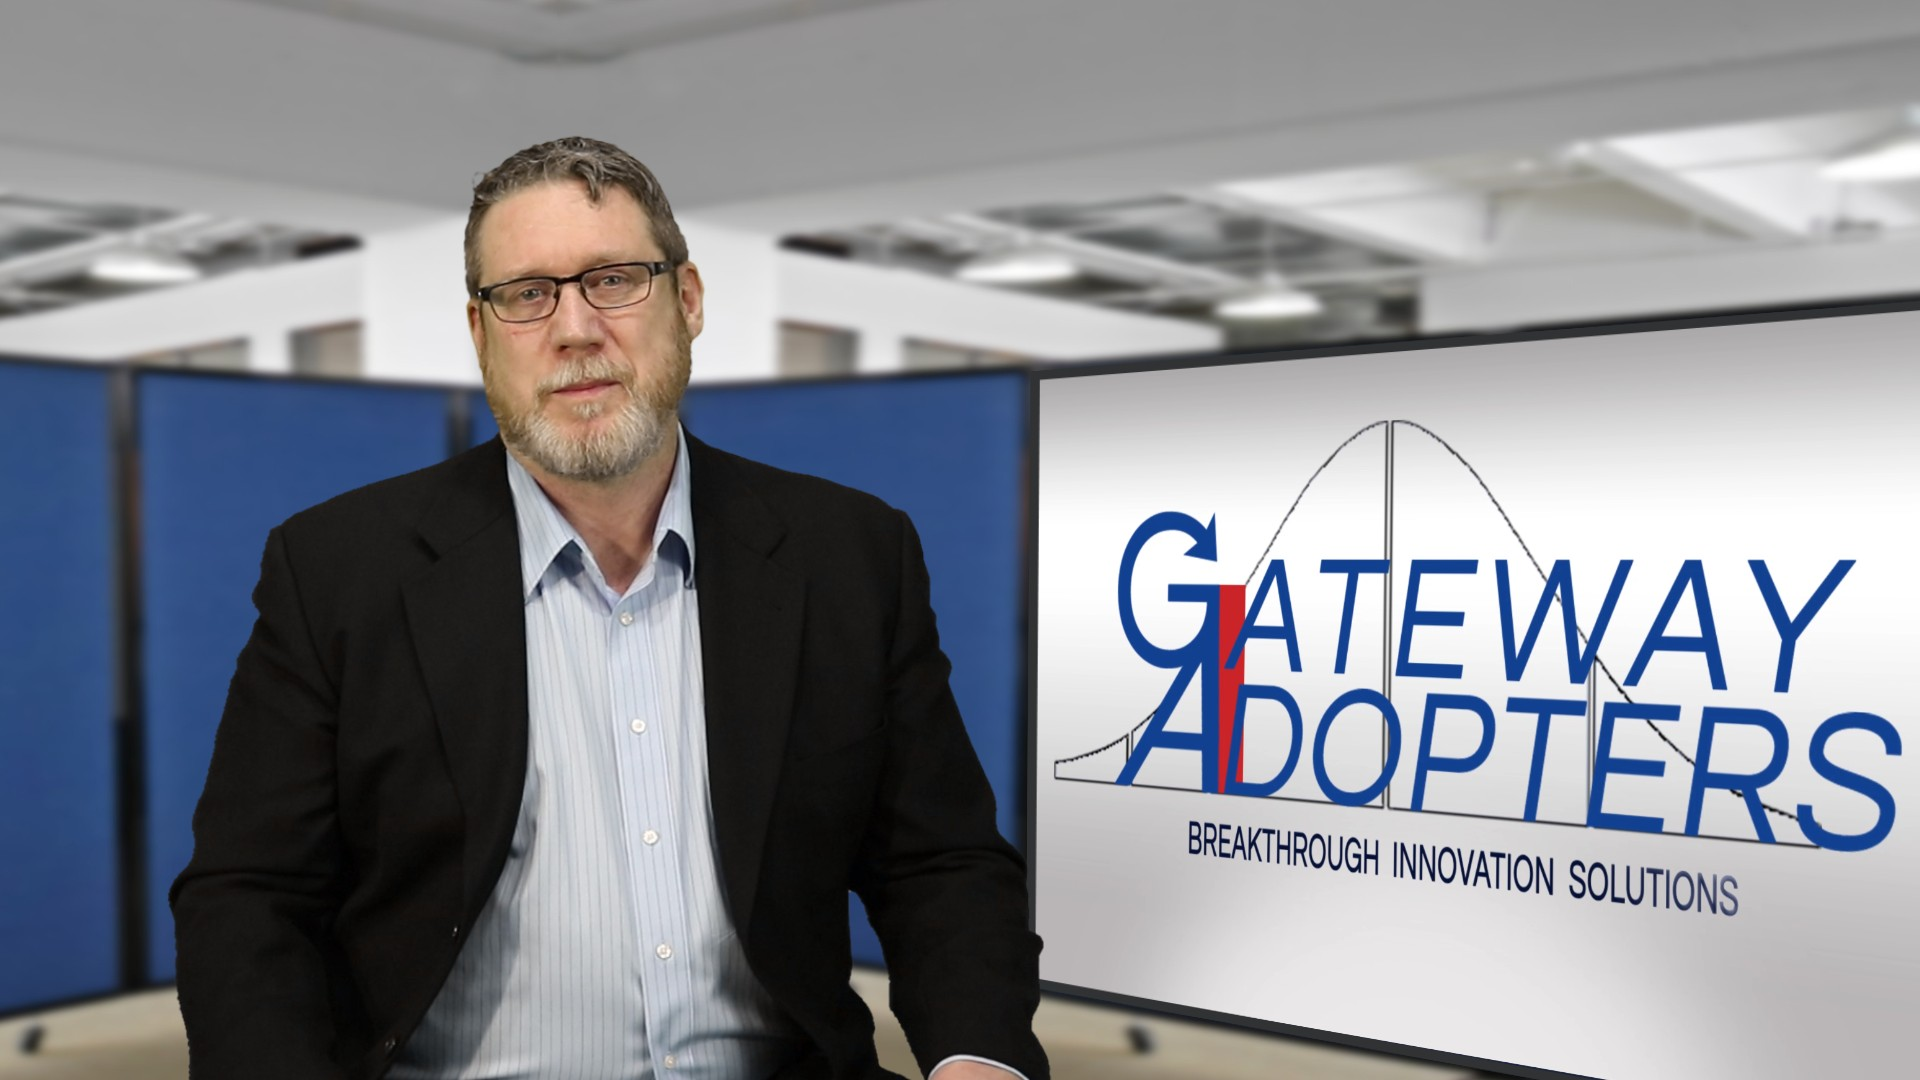 Gateway Adopters